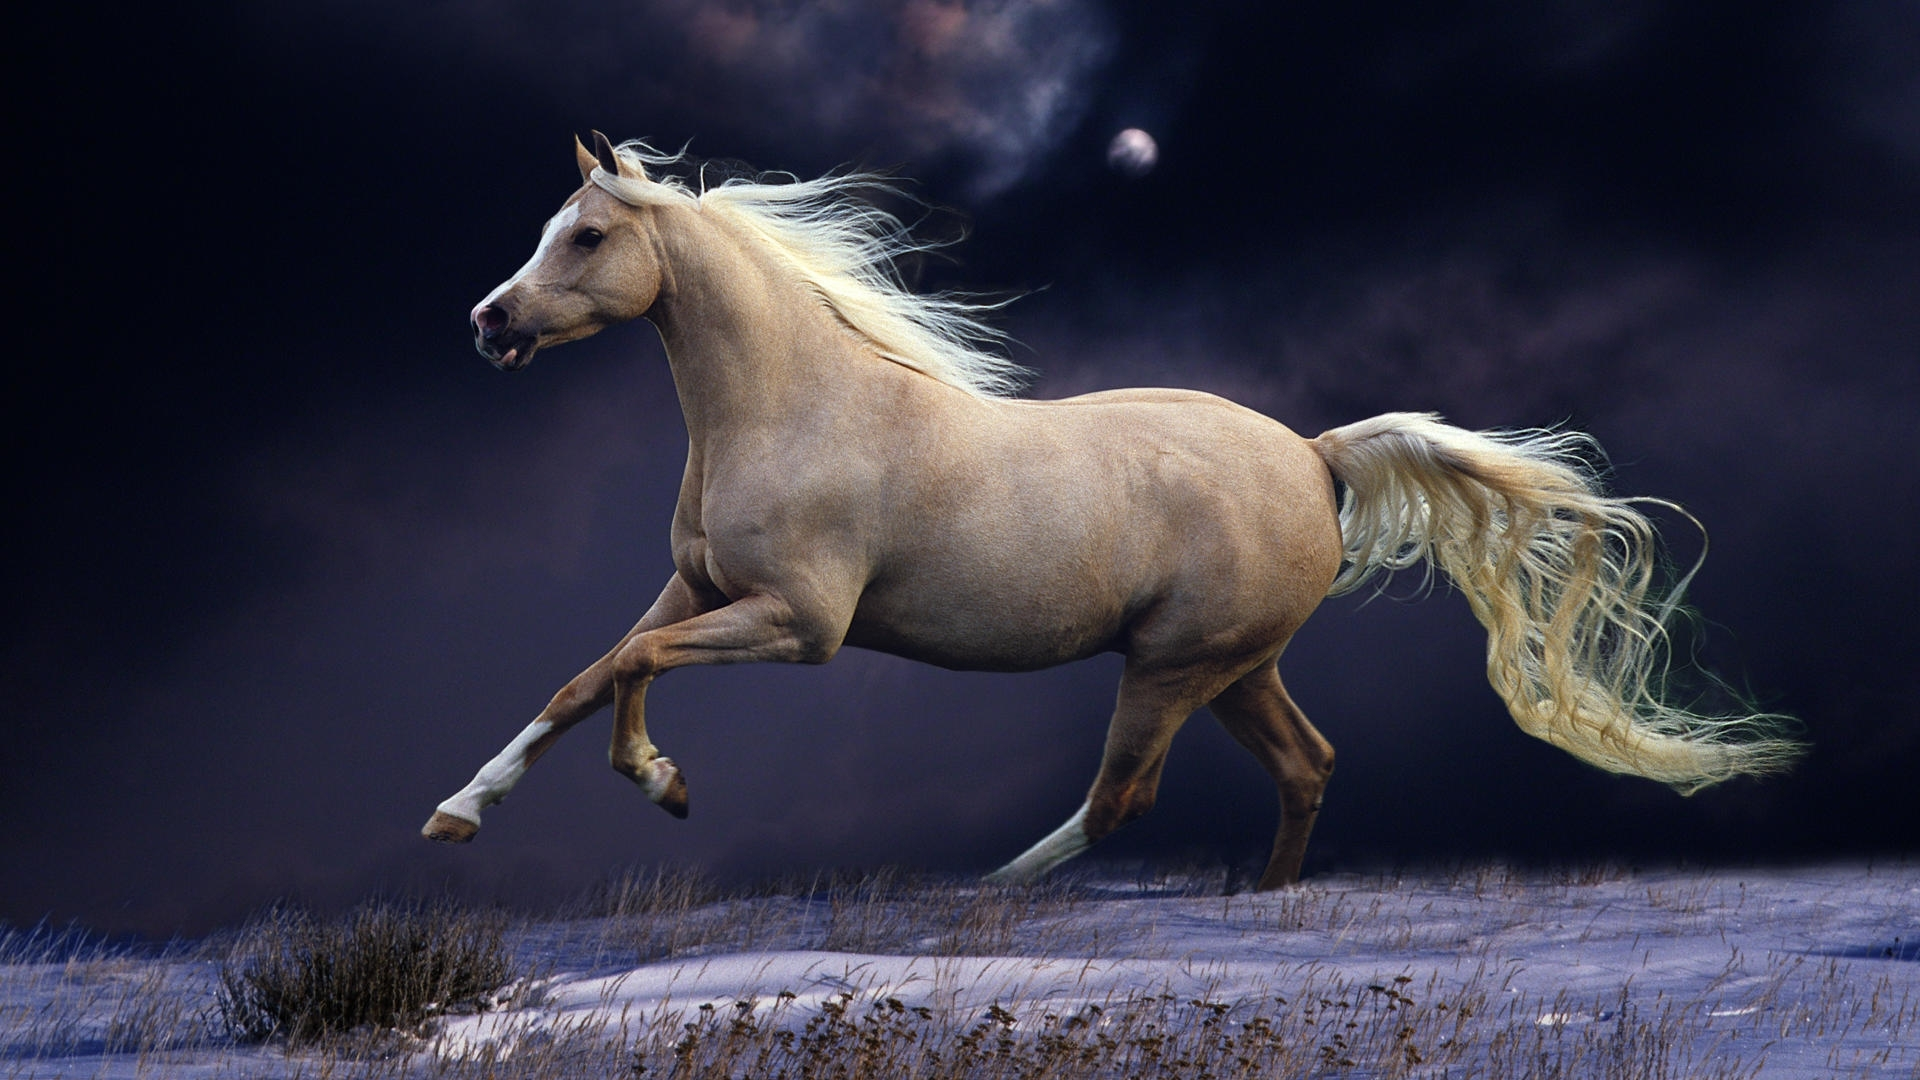 horse wallpapers | best wallpapers